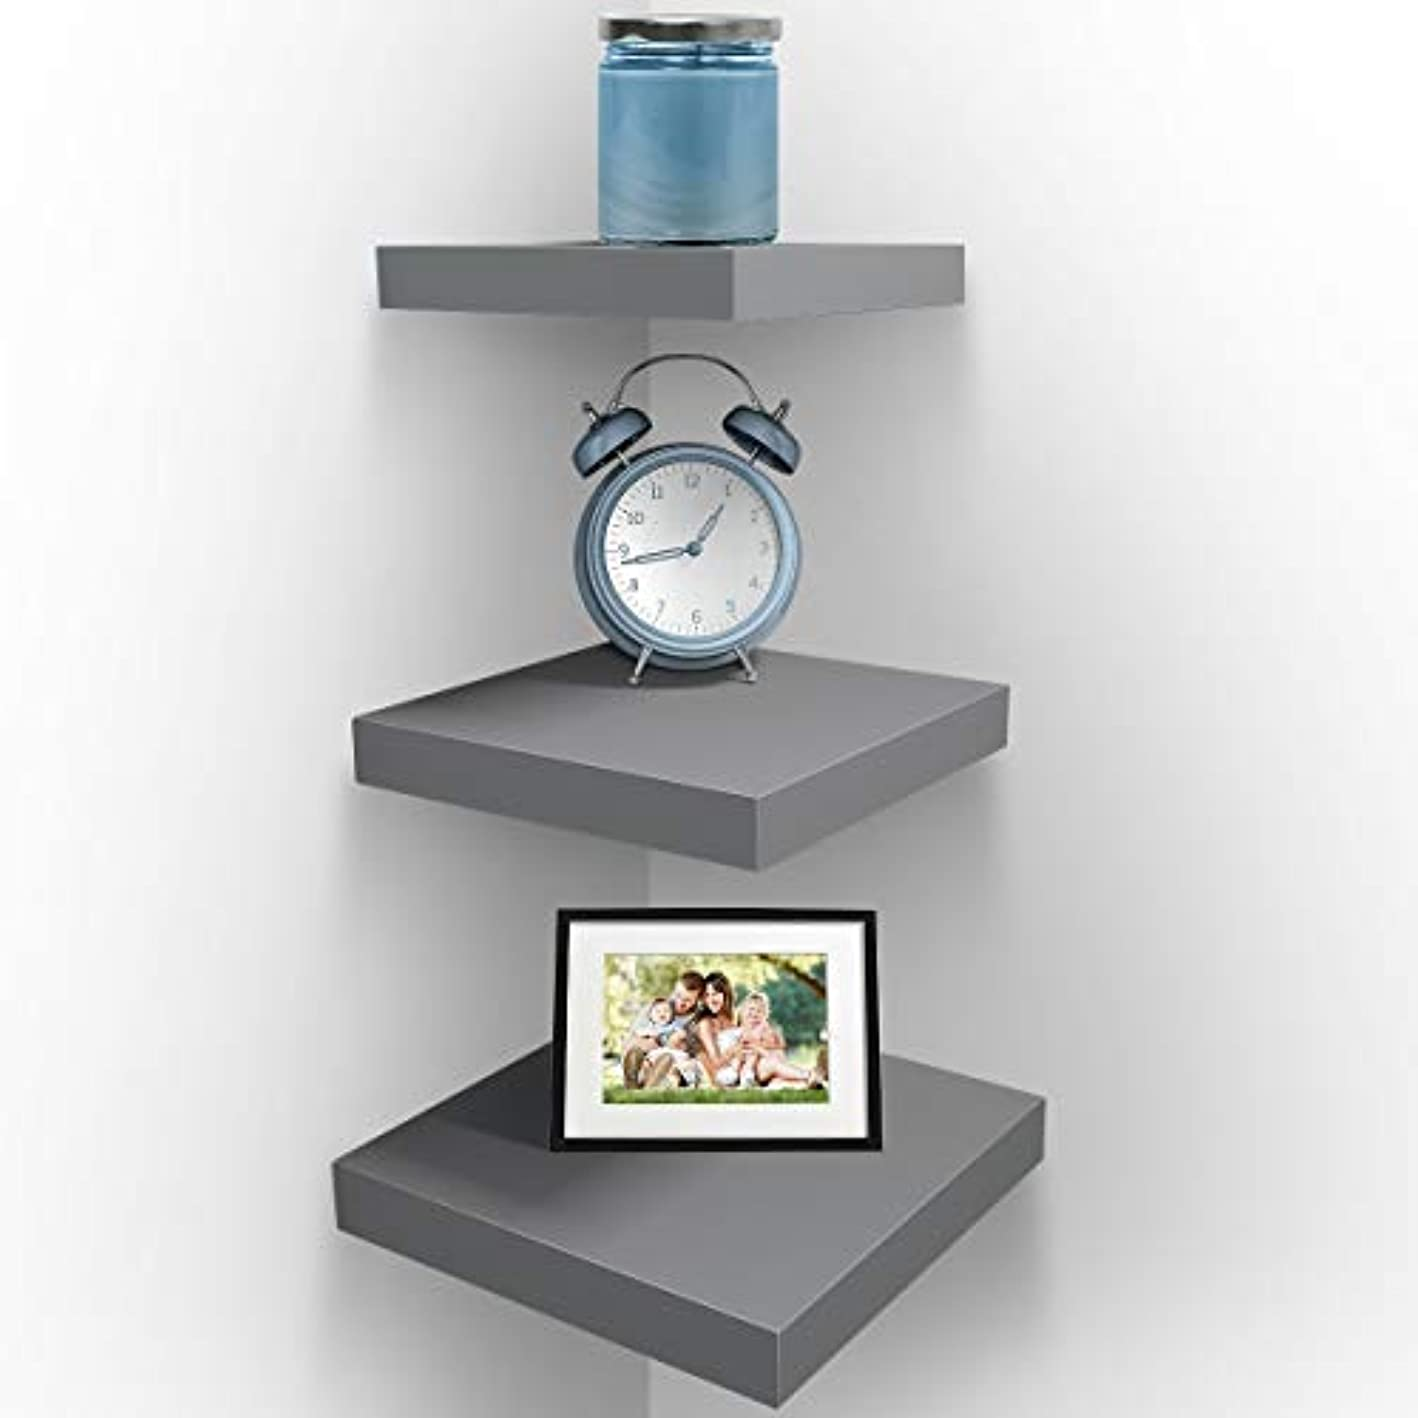 Sorbus Wall Mount Corner Shelves, Square Hanging Wall Shelves Decoration, Perfect Trophy Display, Photo Frames, Home Décor, Set of 3 (Grey)